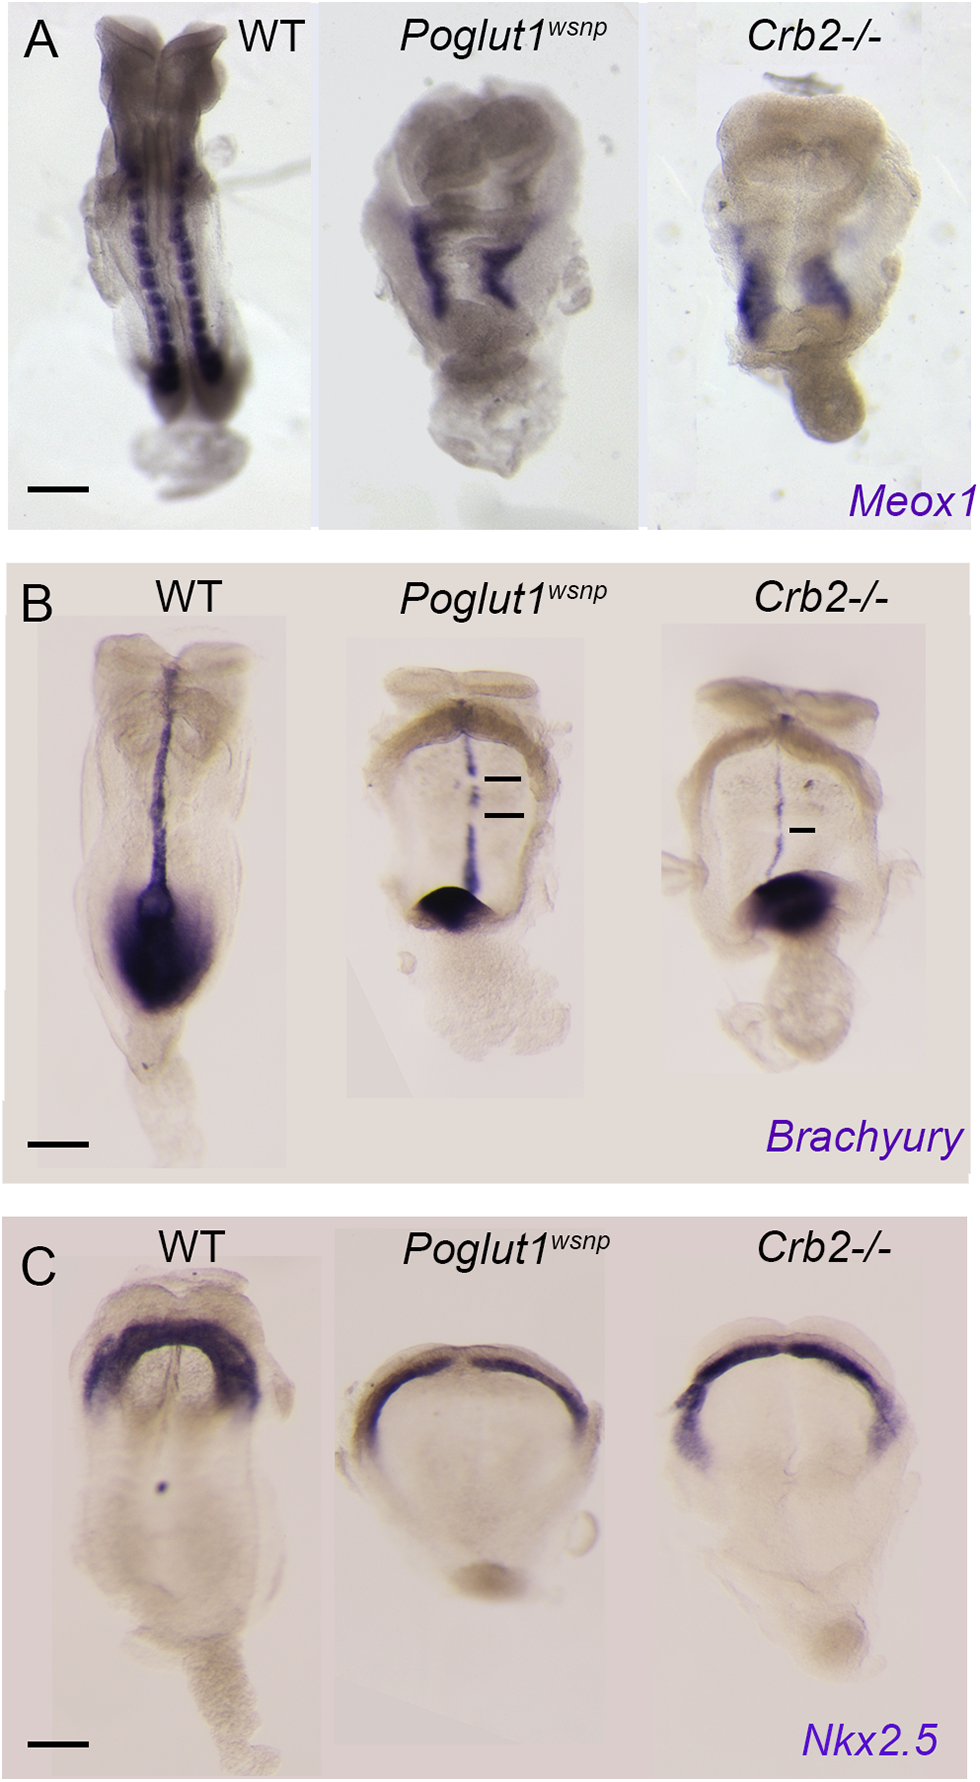 Indistinguishable phenotypes of early <i>Poglut1</i><sup><i>wsnp</i></sup> and <i>Crumbs2</i> mutant embryos.